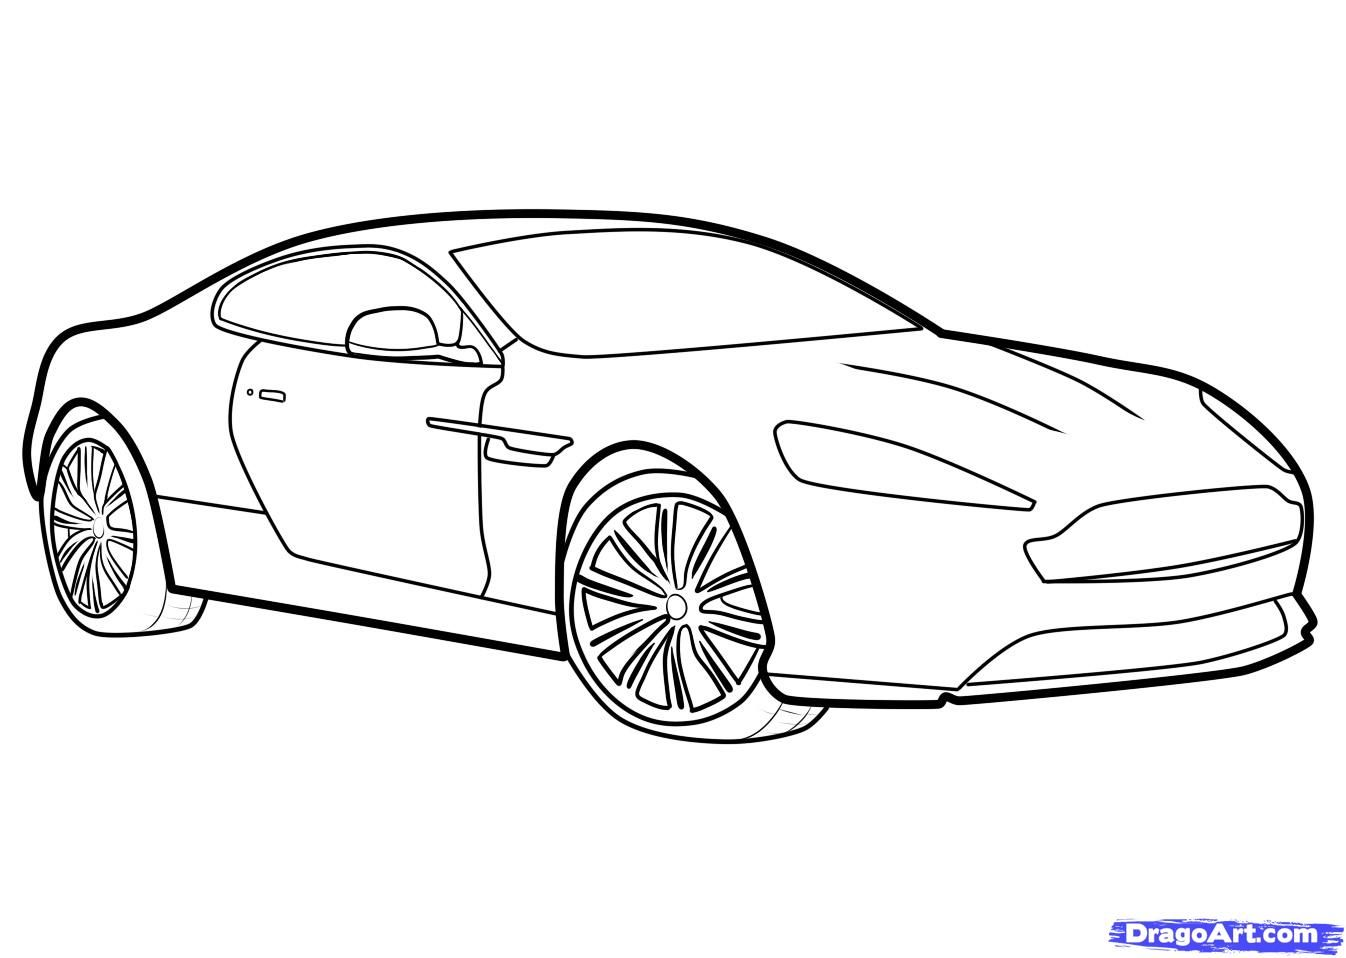 How to draw the Aston Martin Virage car step by step